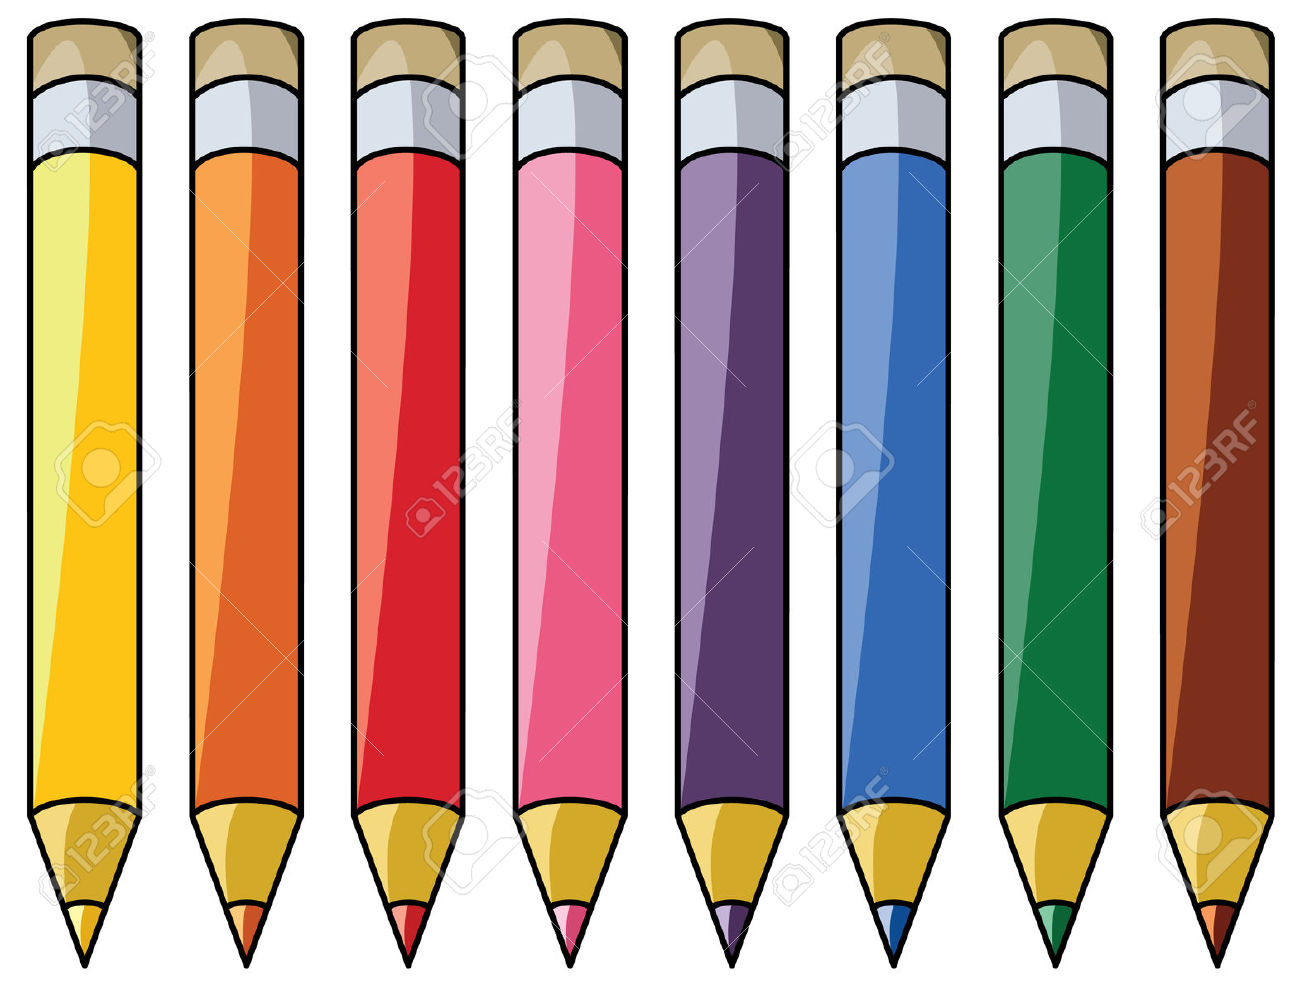 hight resolution of free pencil clipart public domain pencil clip art images and image 3